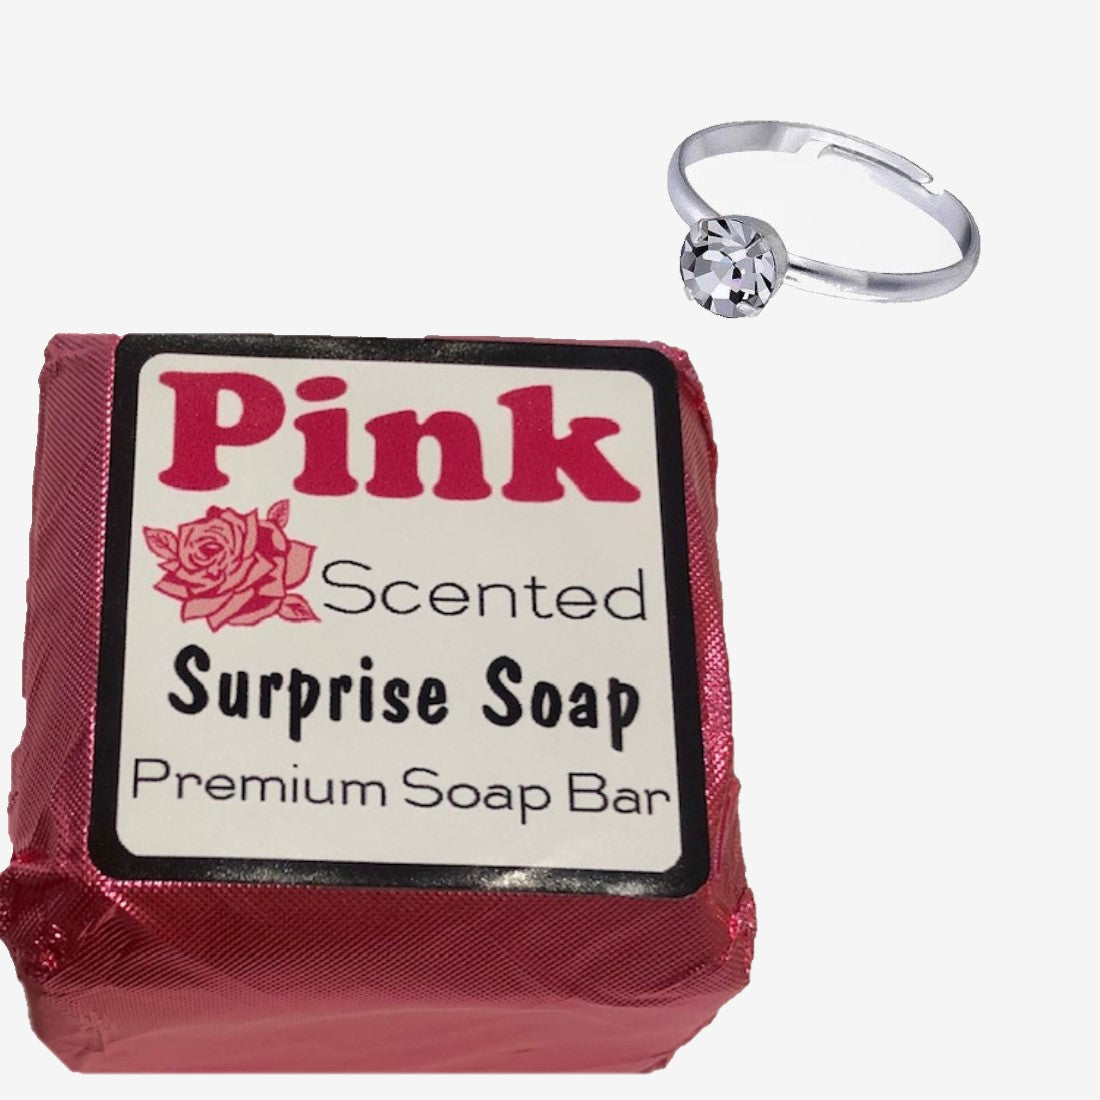 Mystery Soap Rose Scent Luxury Bath Bar with Surprise Faux Silver Diamond Ring Inside